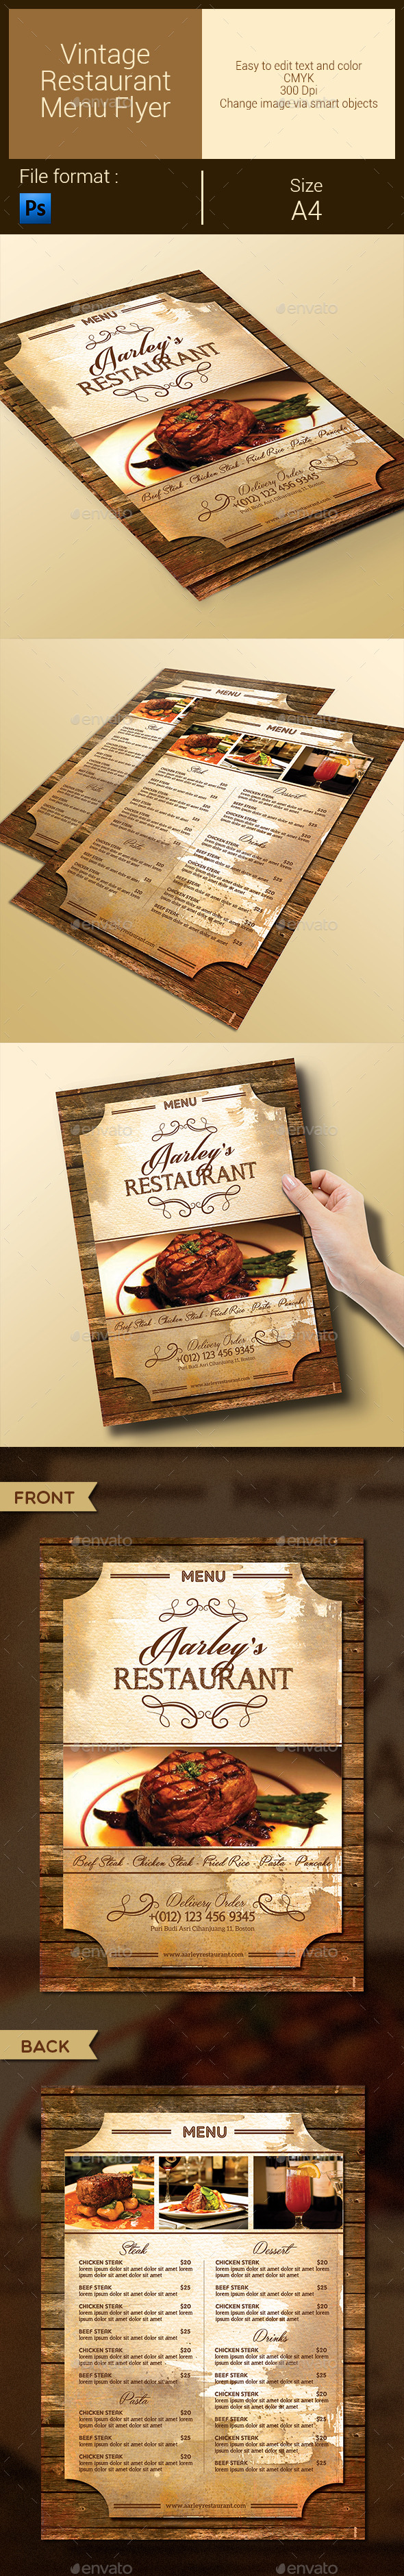 GraphicRiver Vintage Restaurant Menu Flyer 9575758